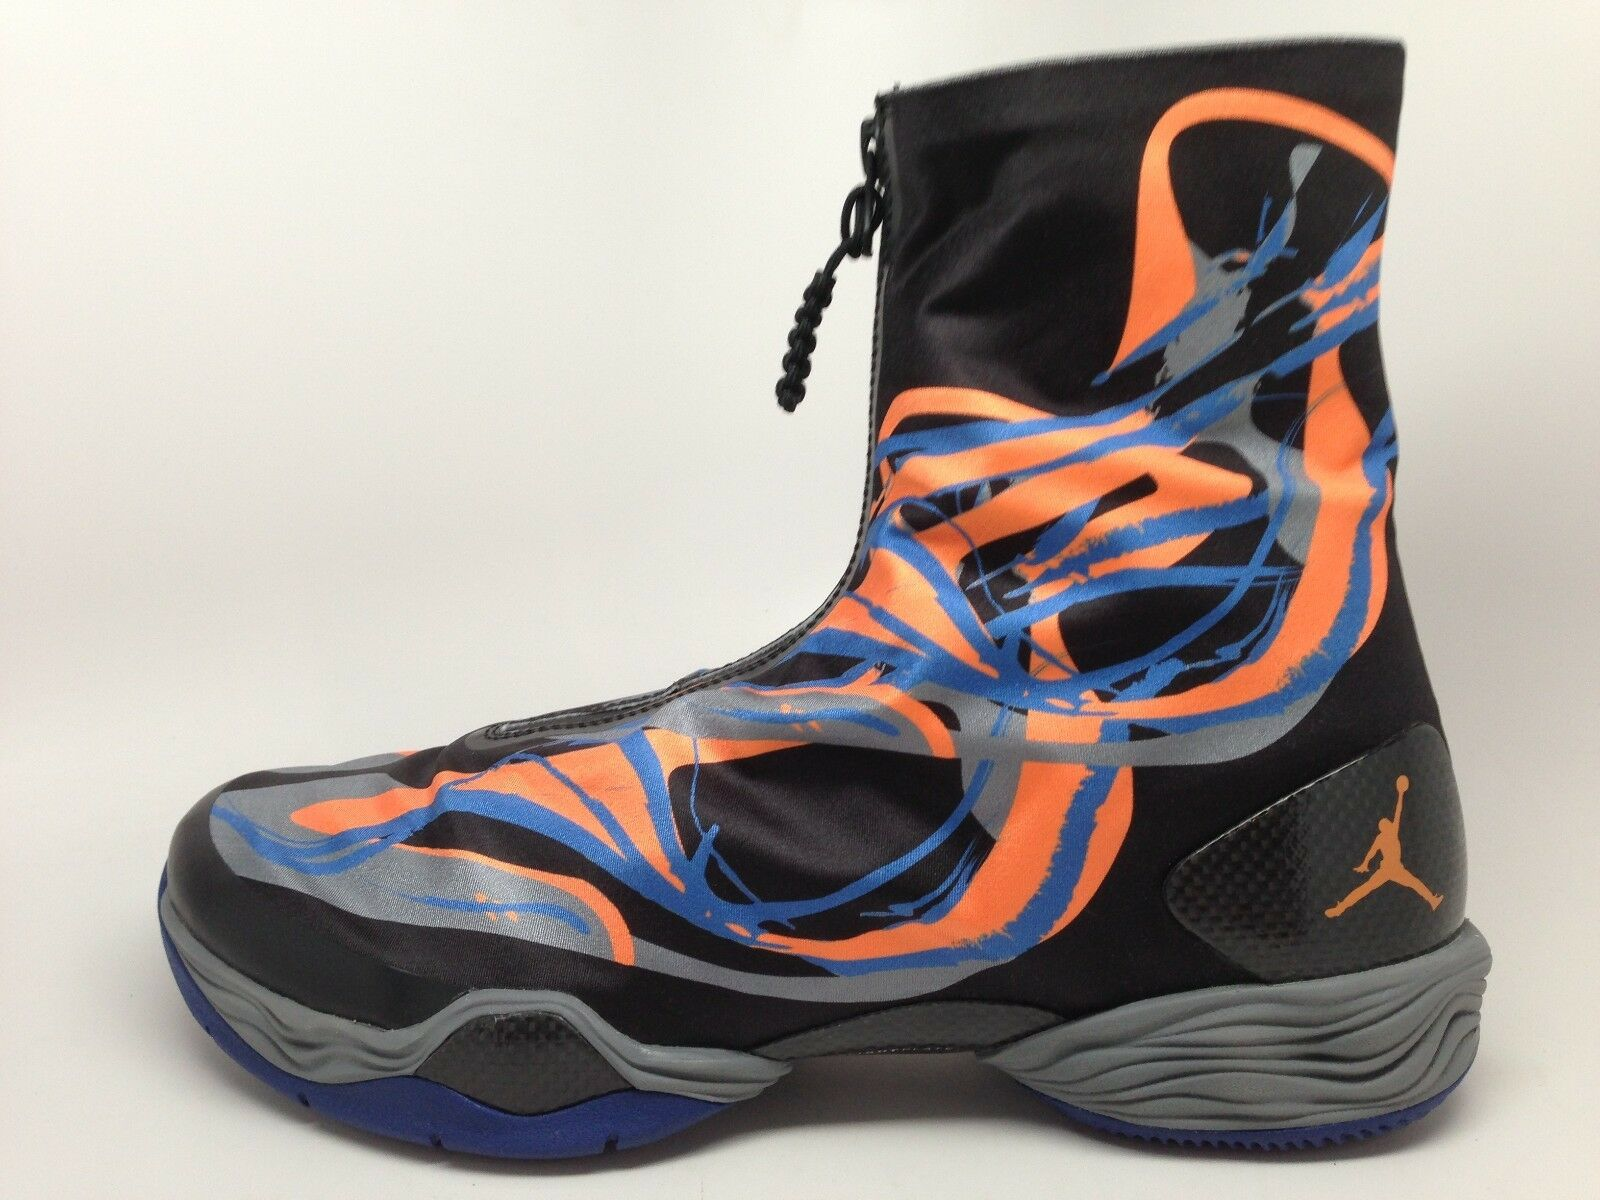 Nike air forte jordan 28 xx8 2013 nero agrumi forte air grey 555109-008 new york knicks 1cc94f